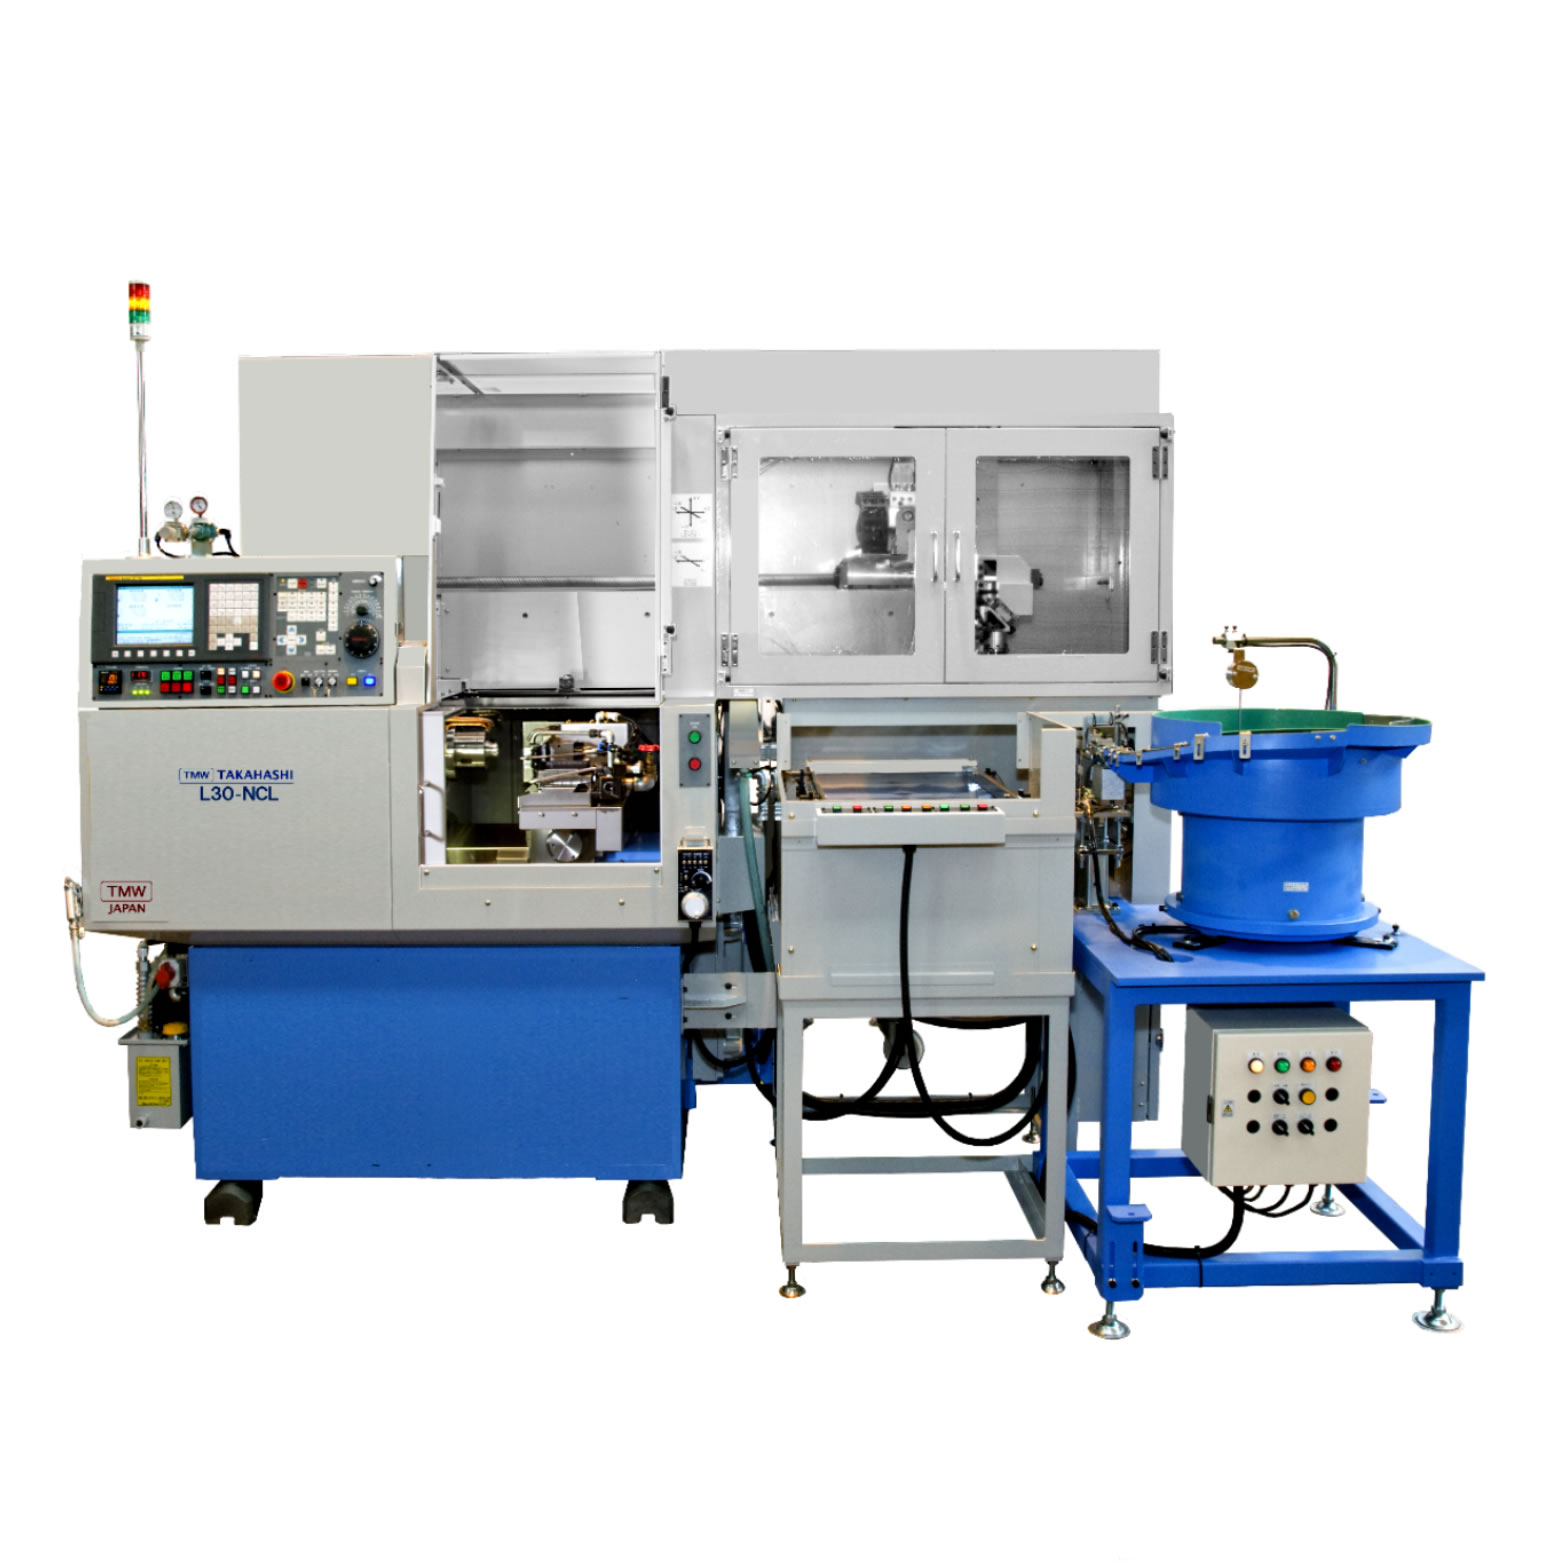 Microstar l30-ncl (precision compact gang type cnc lathe with 3-axis cnc controlled gantry loader)